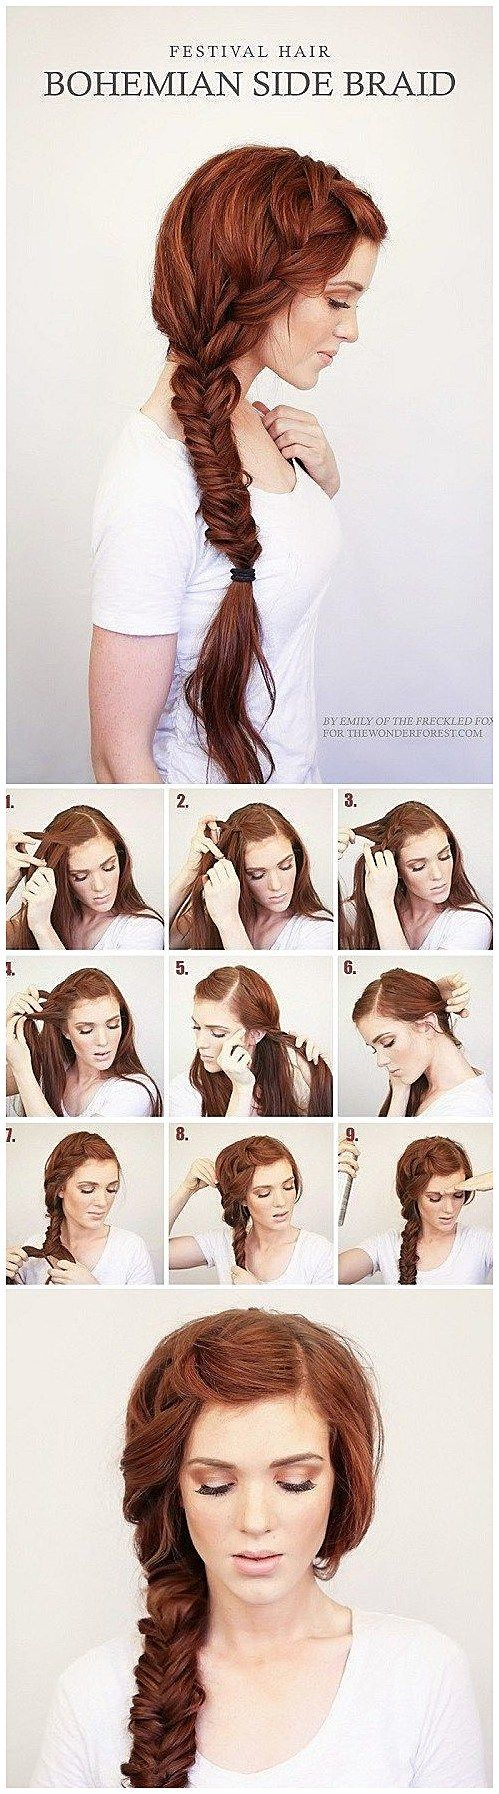 Side Fishtail Tutorial More #HairBraidTutorial #Hairstyle #HairGuide ...